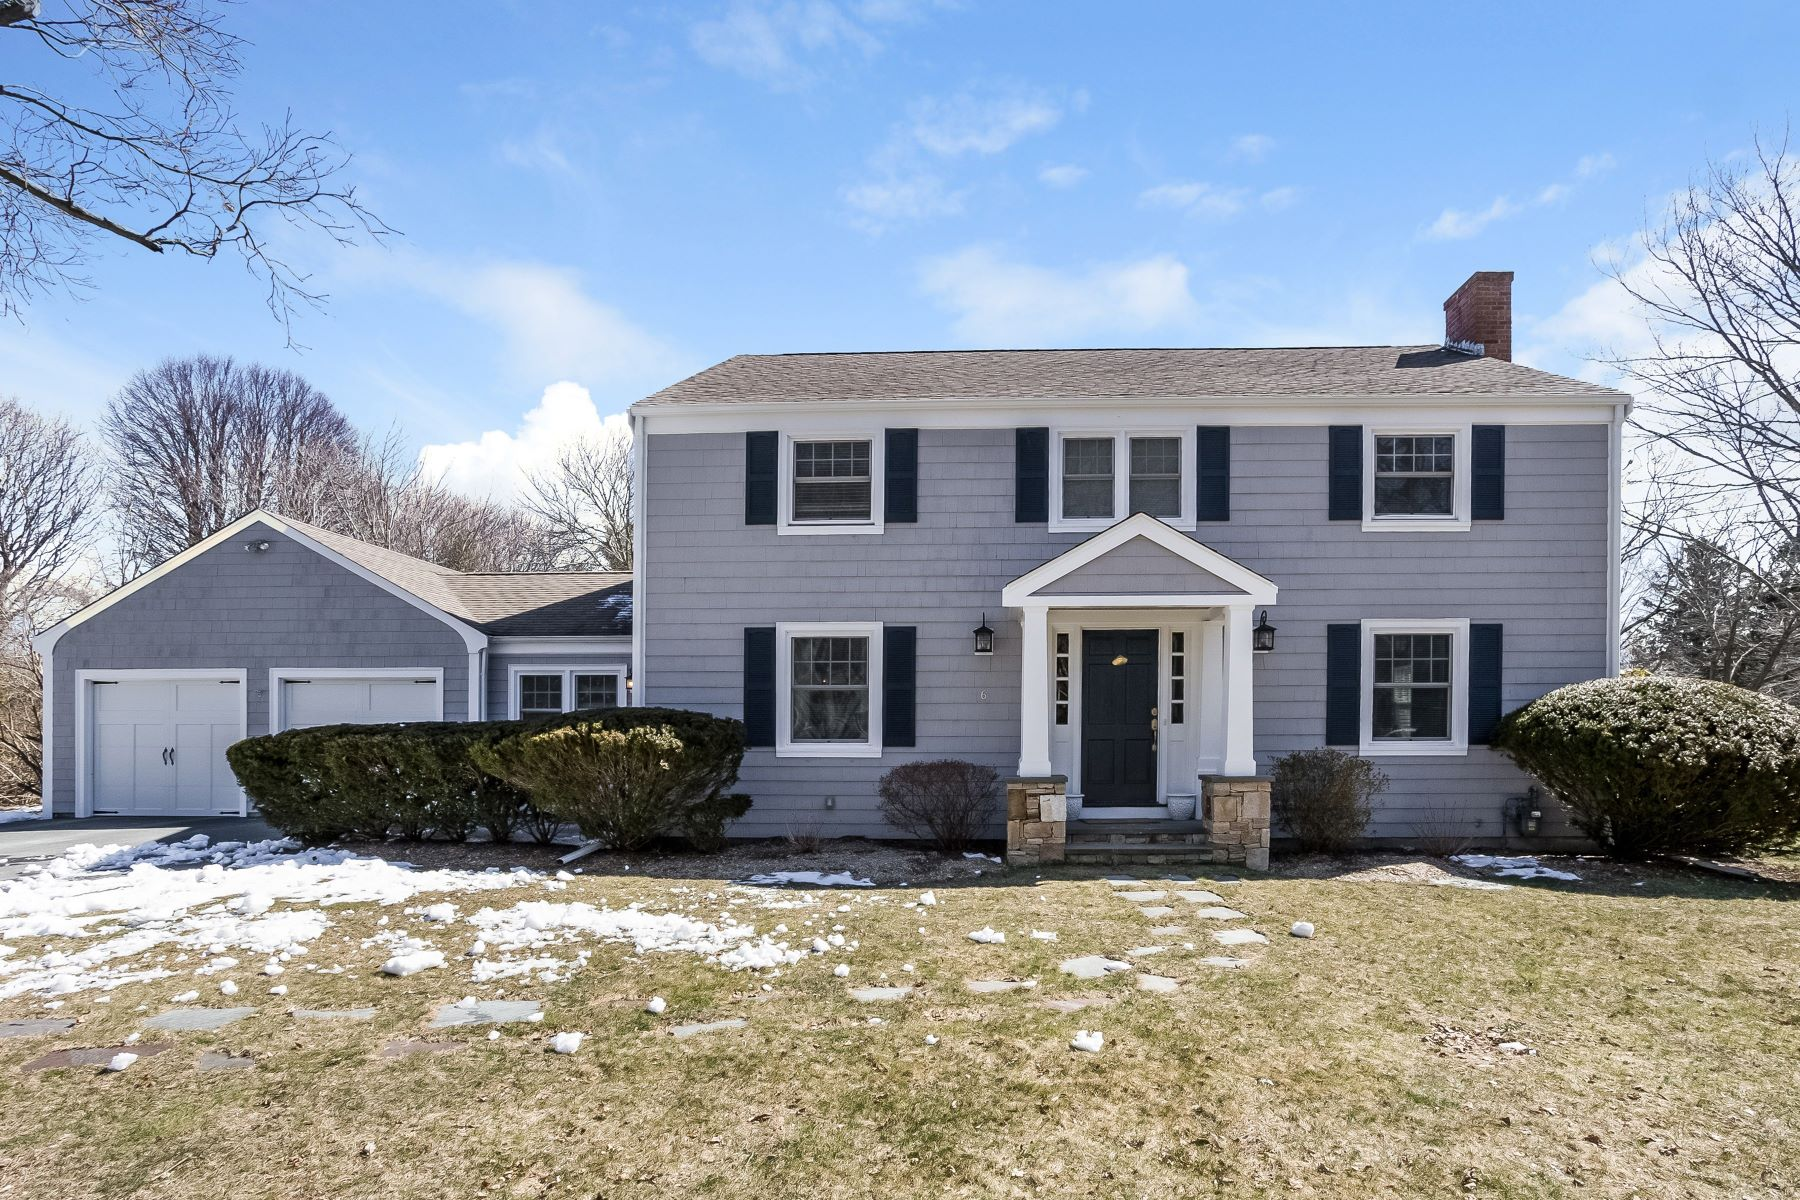 Single Family Home for Sale at 6 Ridgewood Rd, Barrington, RI 6 Ridgewood Rd Barrington, Rhode Island 02806 United States